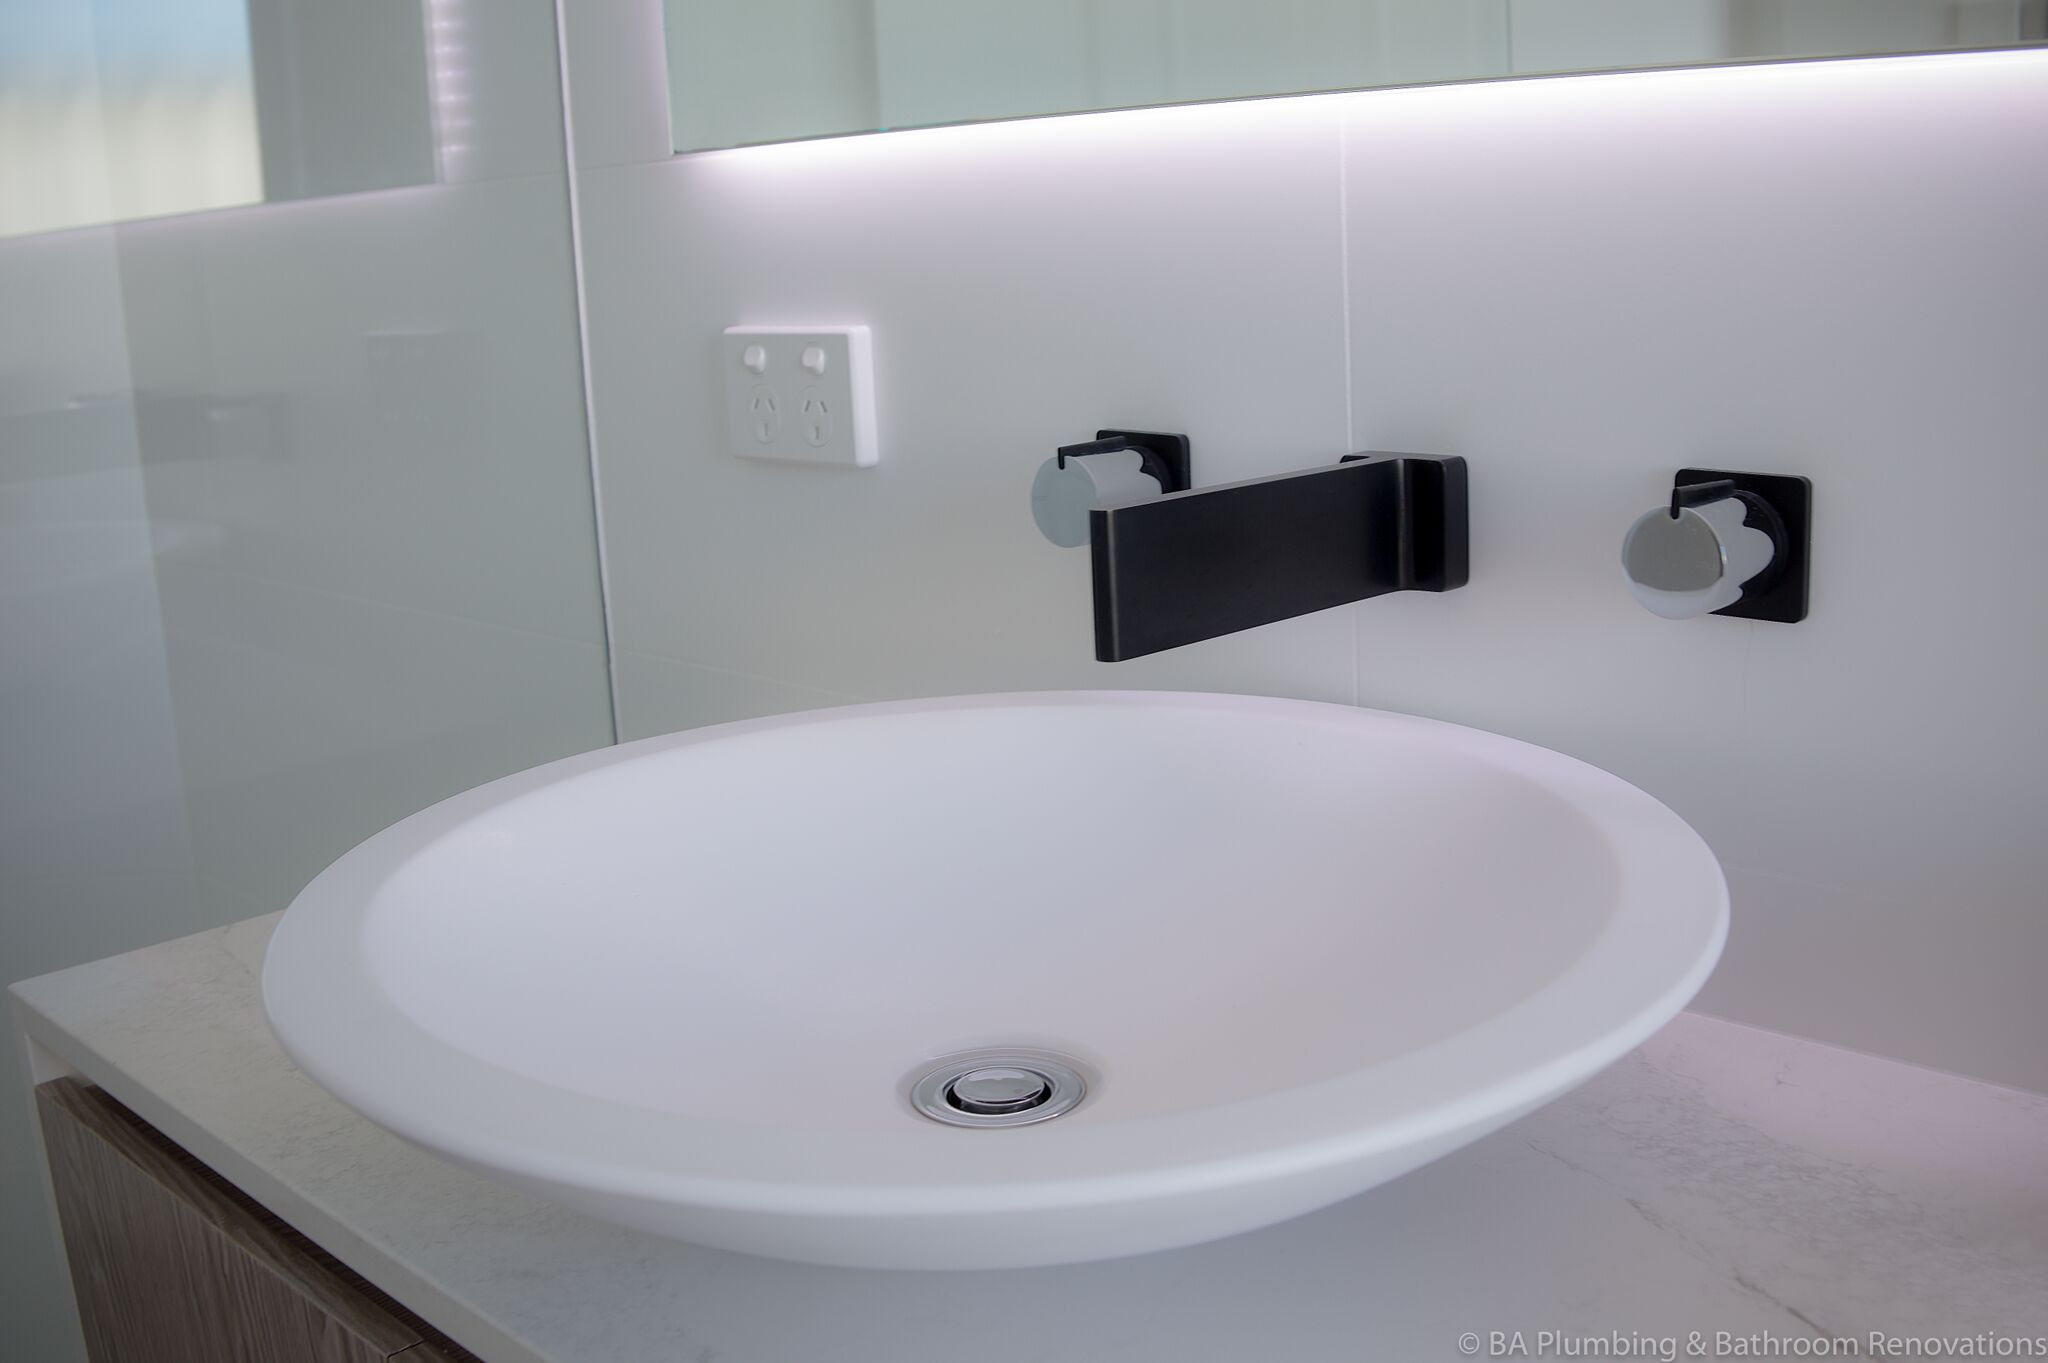 Bathroom Renovations Warehouse bathroom warehouse perth